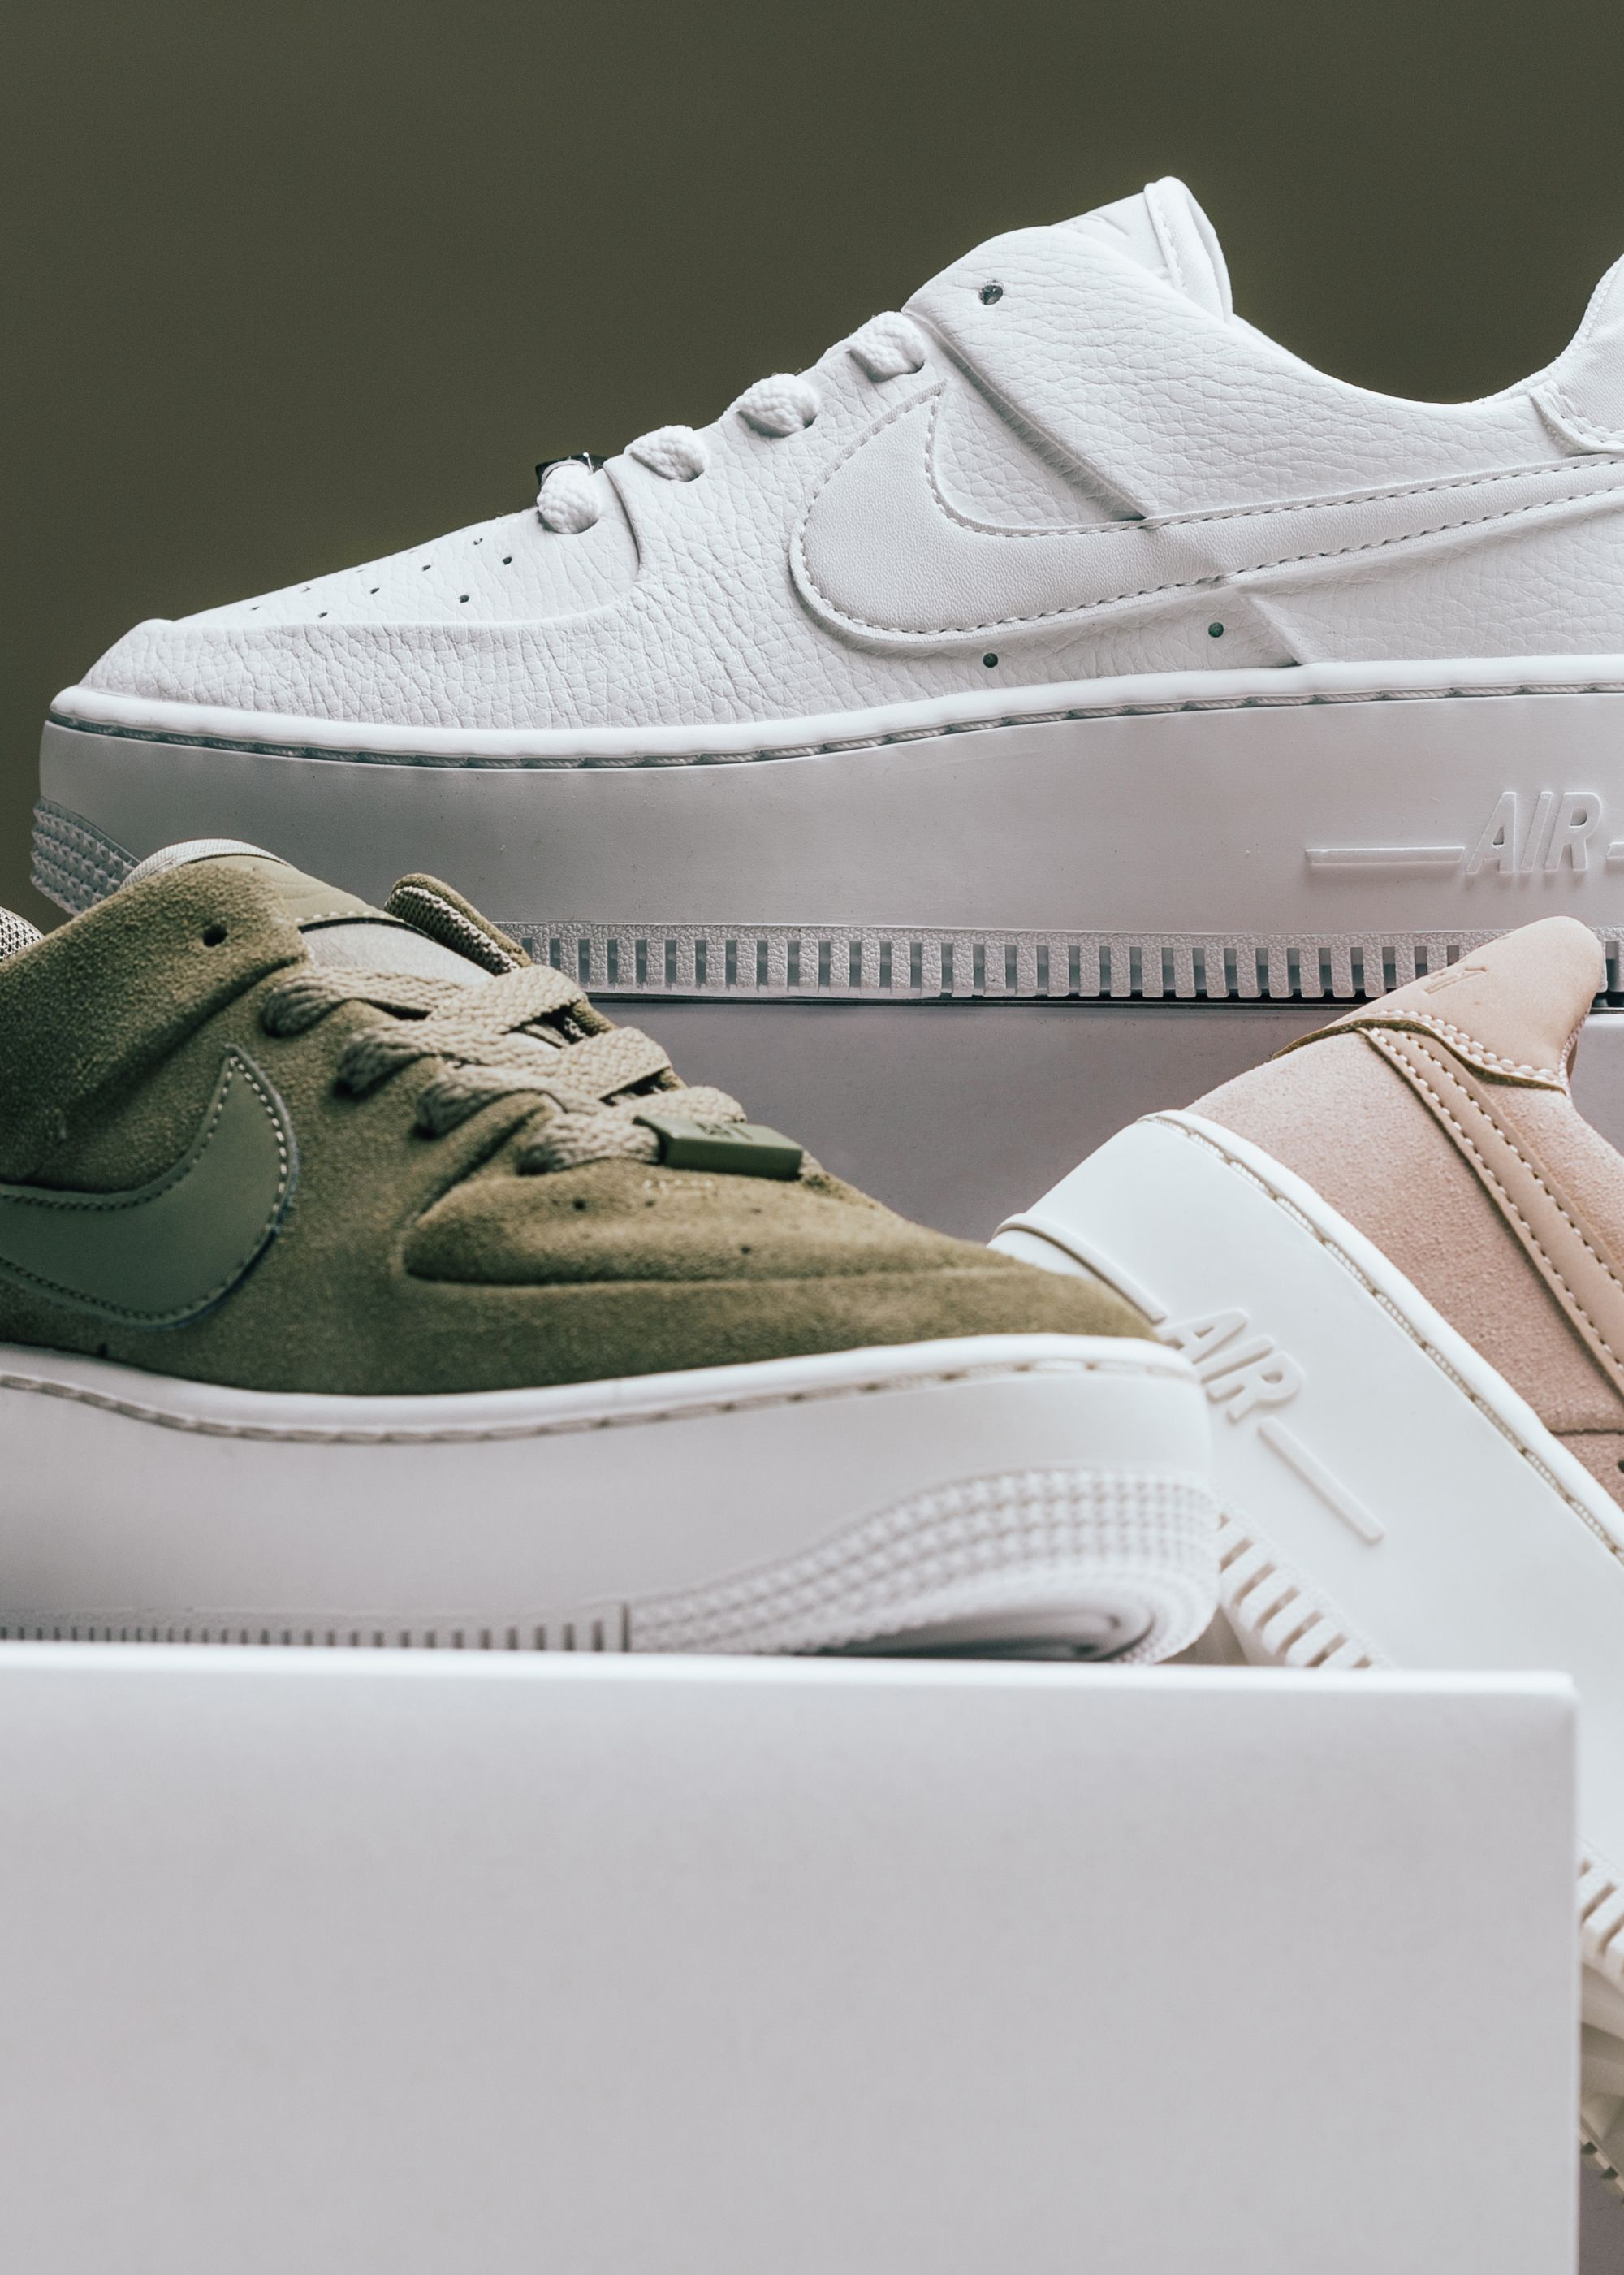 Nike Womens Air Force 1 Sage Low | All Things Good in 2019